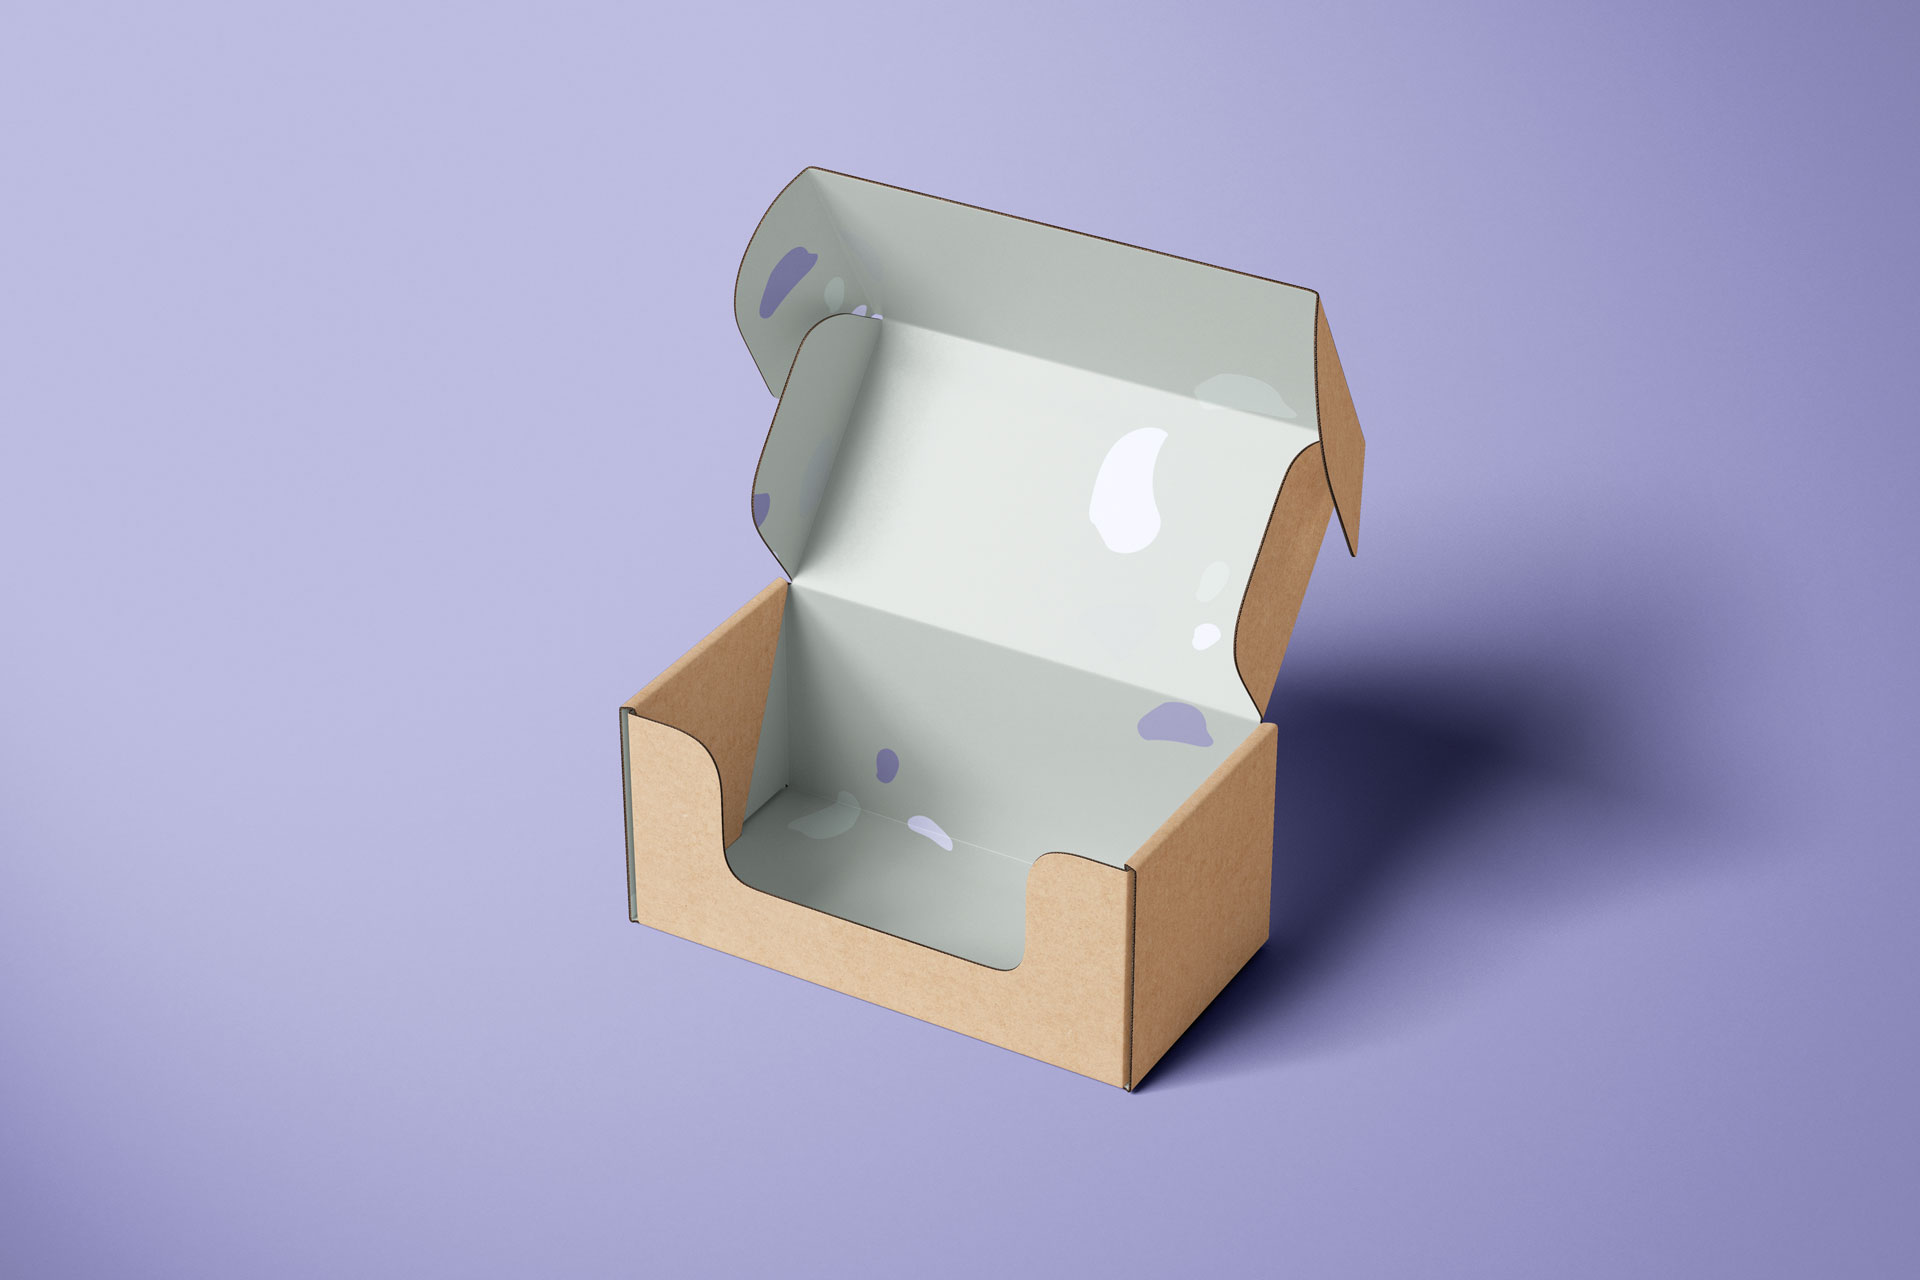 studiogavari-mailerbox-packagingdesign-05